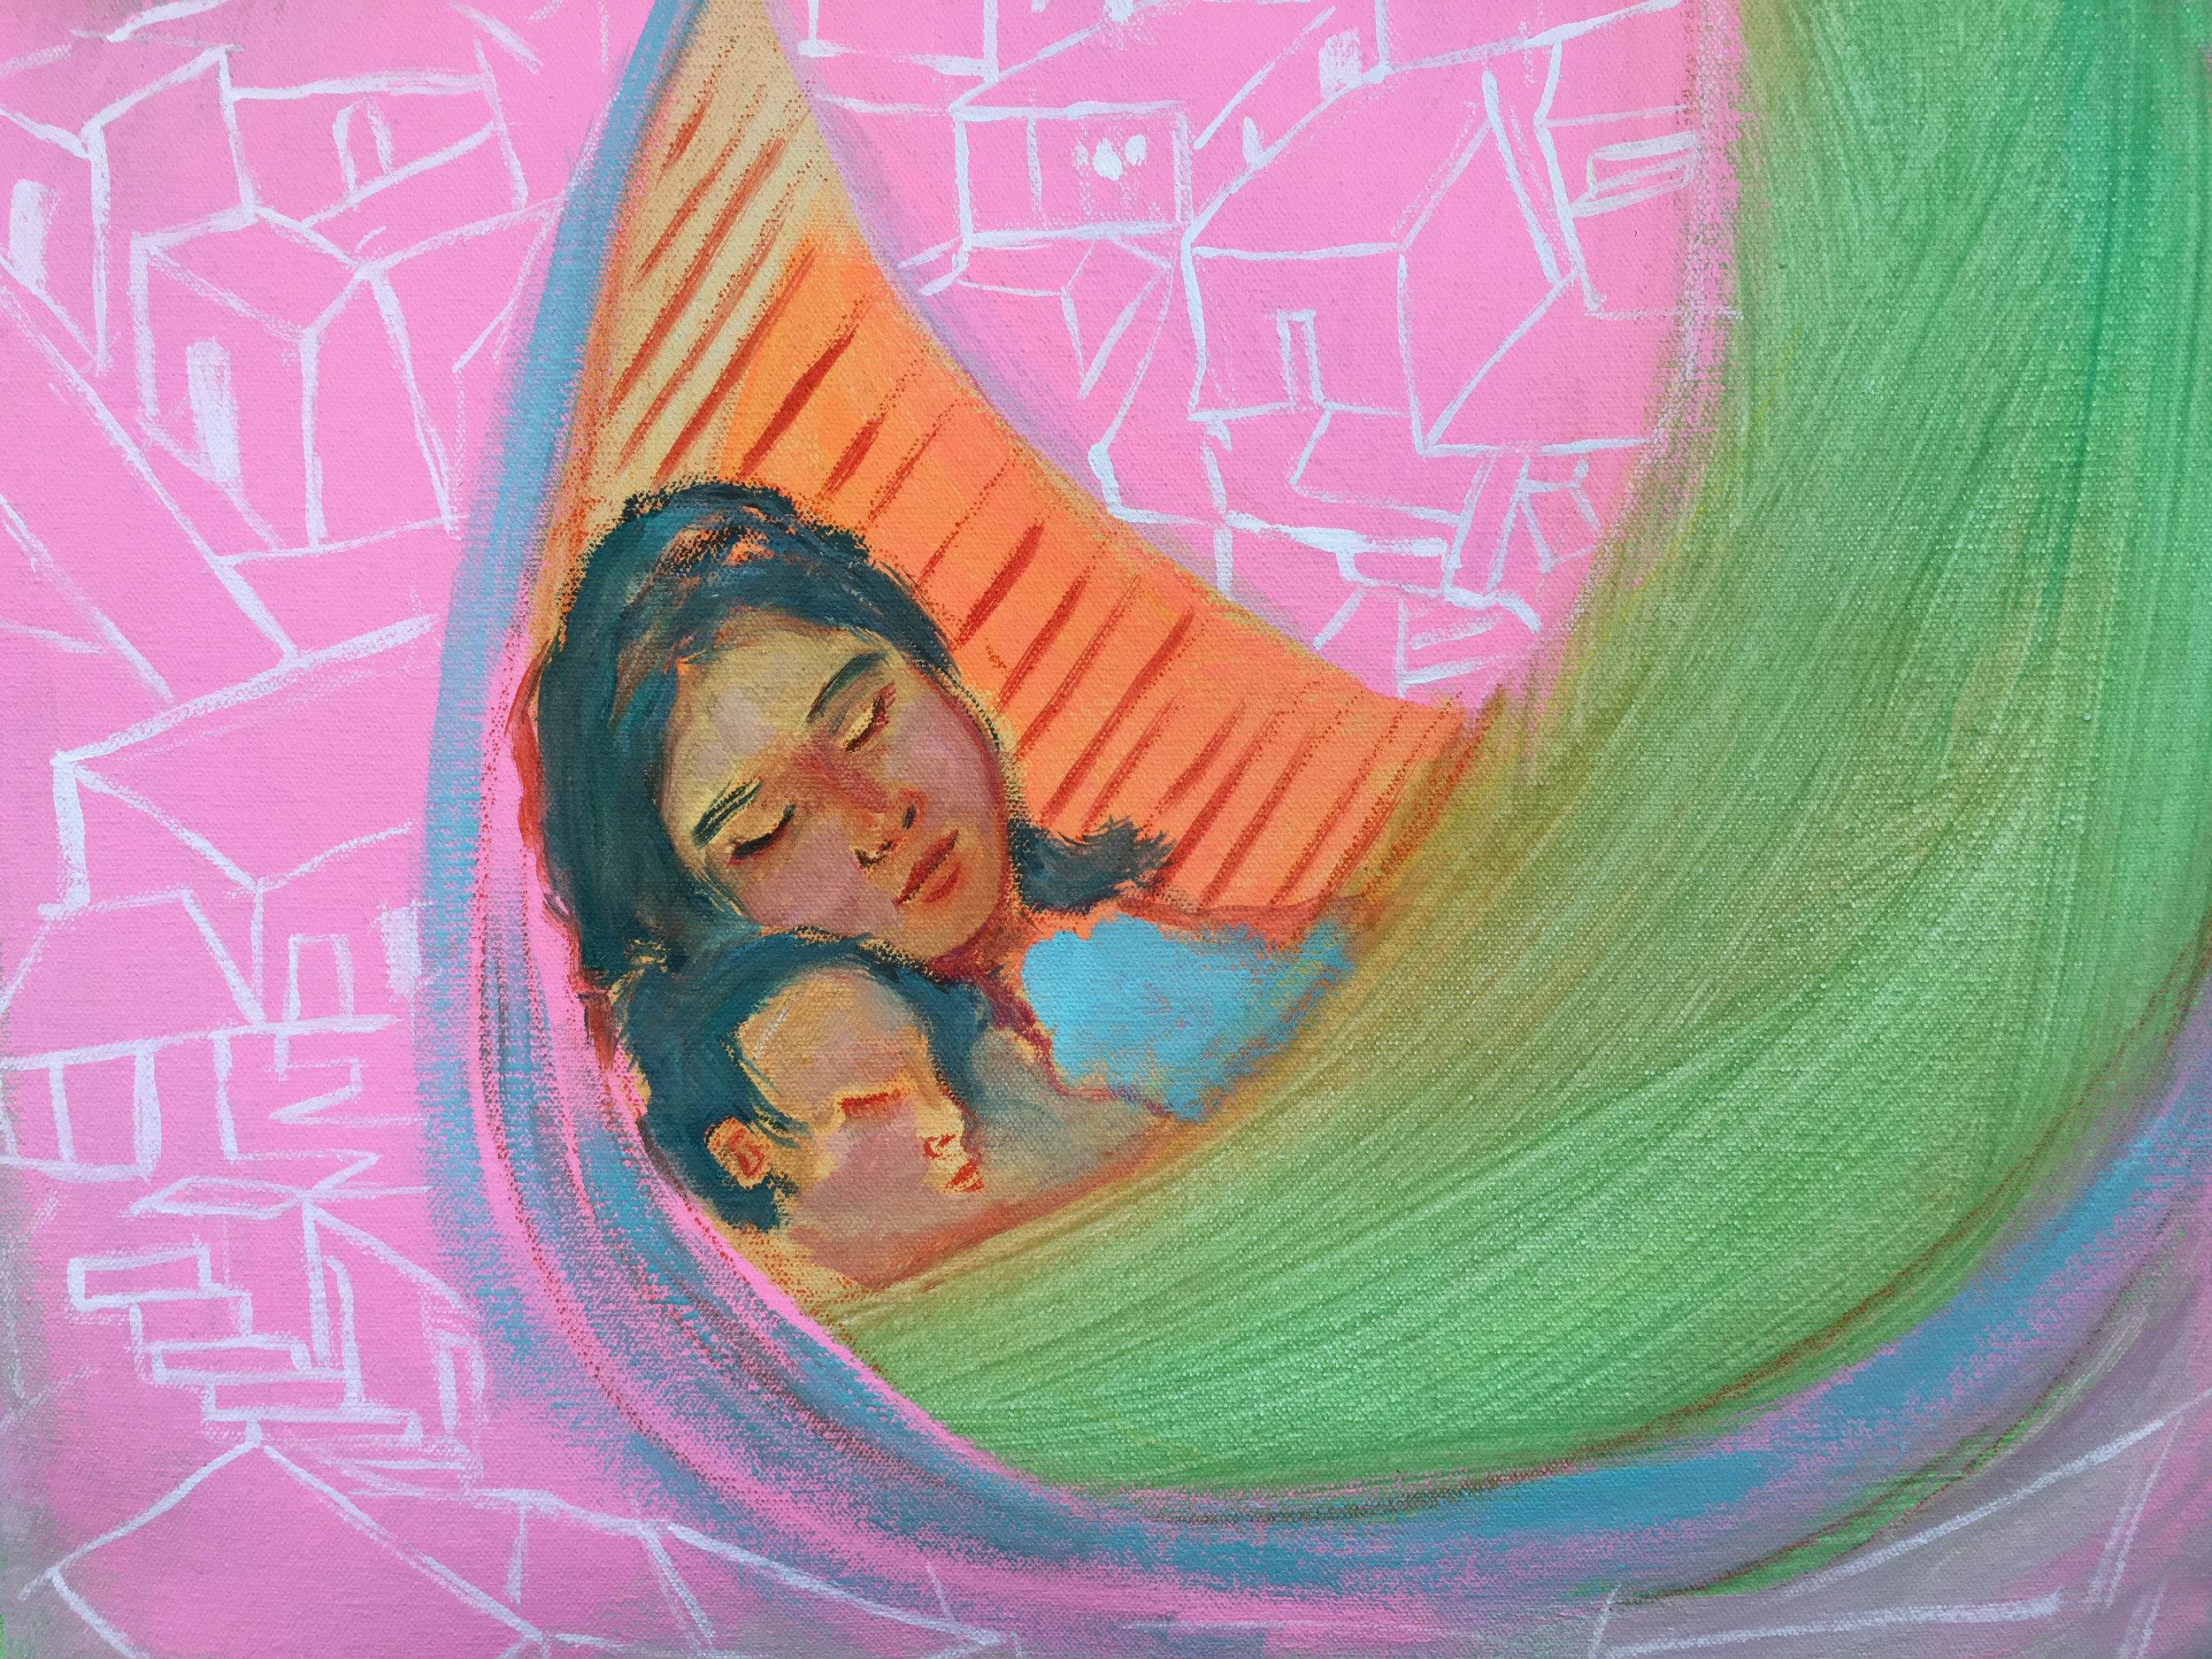 Siesta de Chinchorro , Oil and Acrylic on Canvas, 19 by 19 in., 2018.